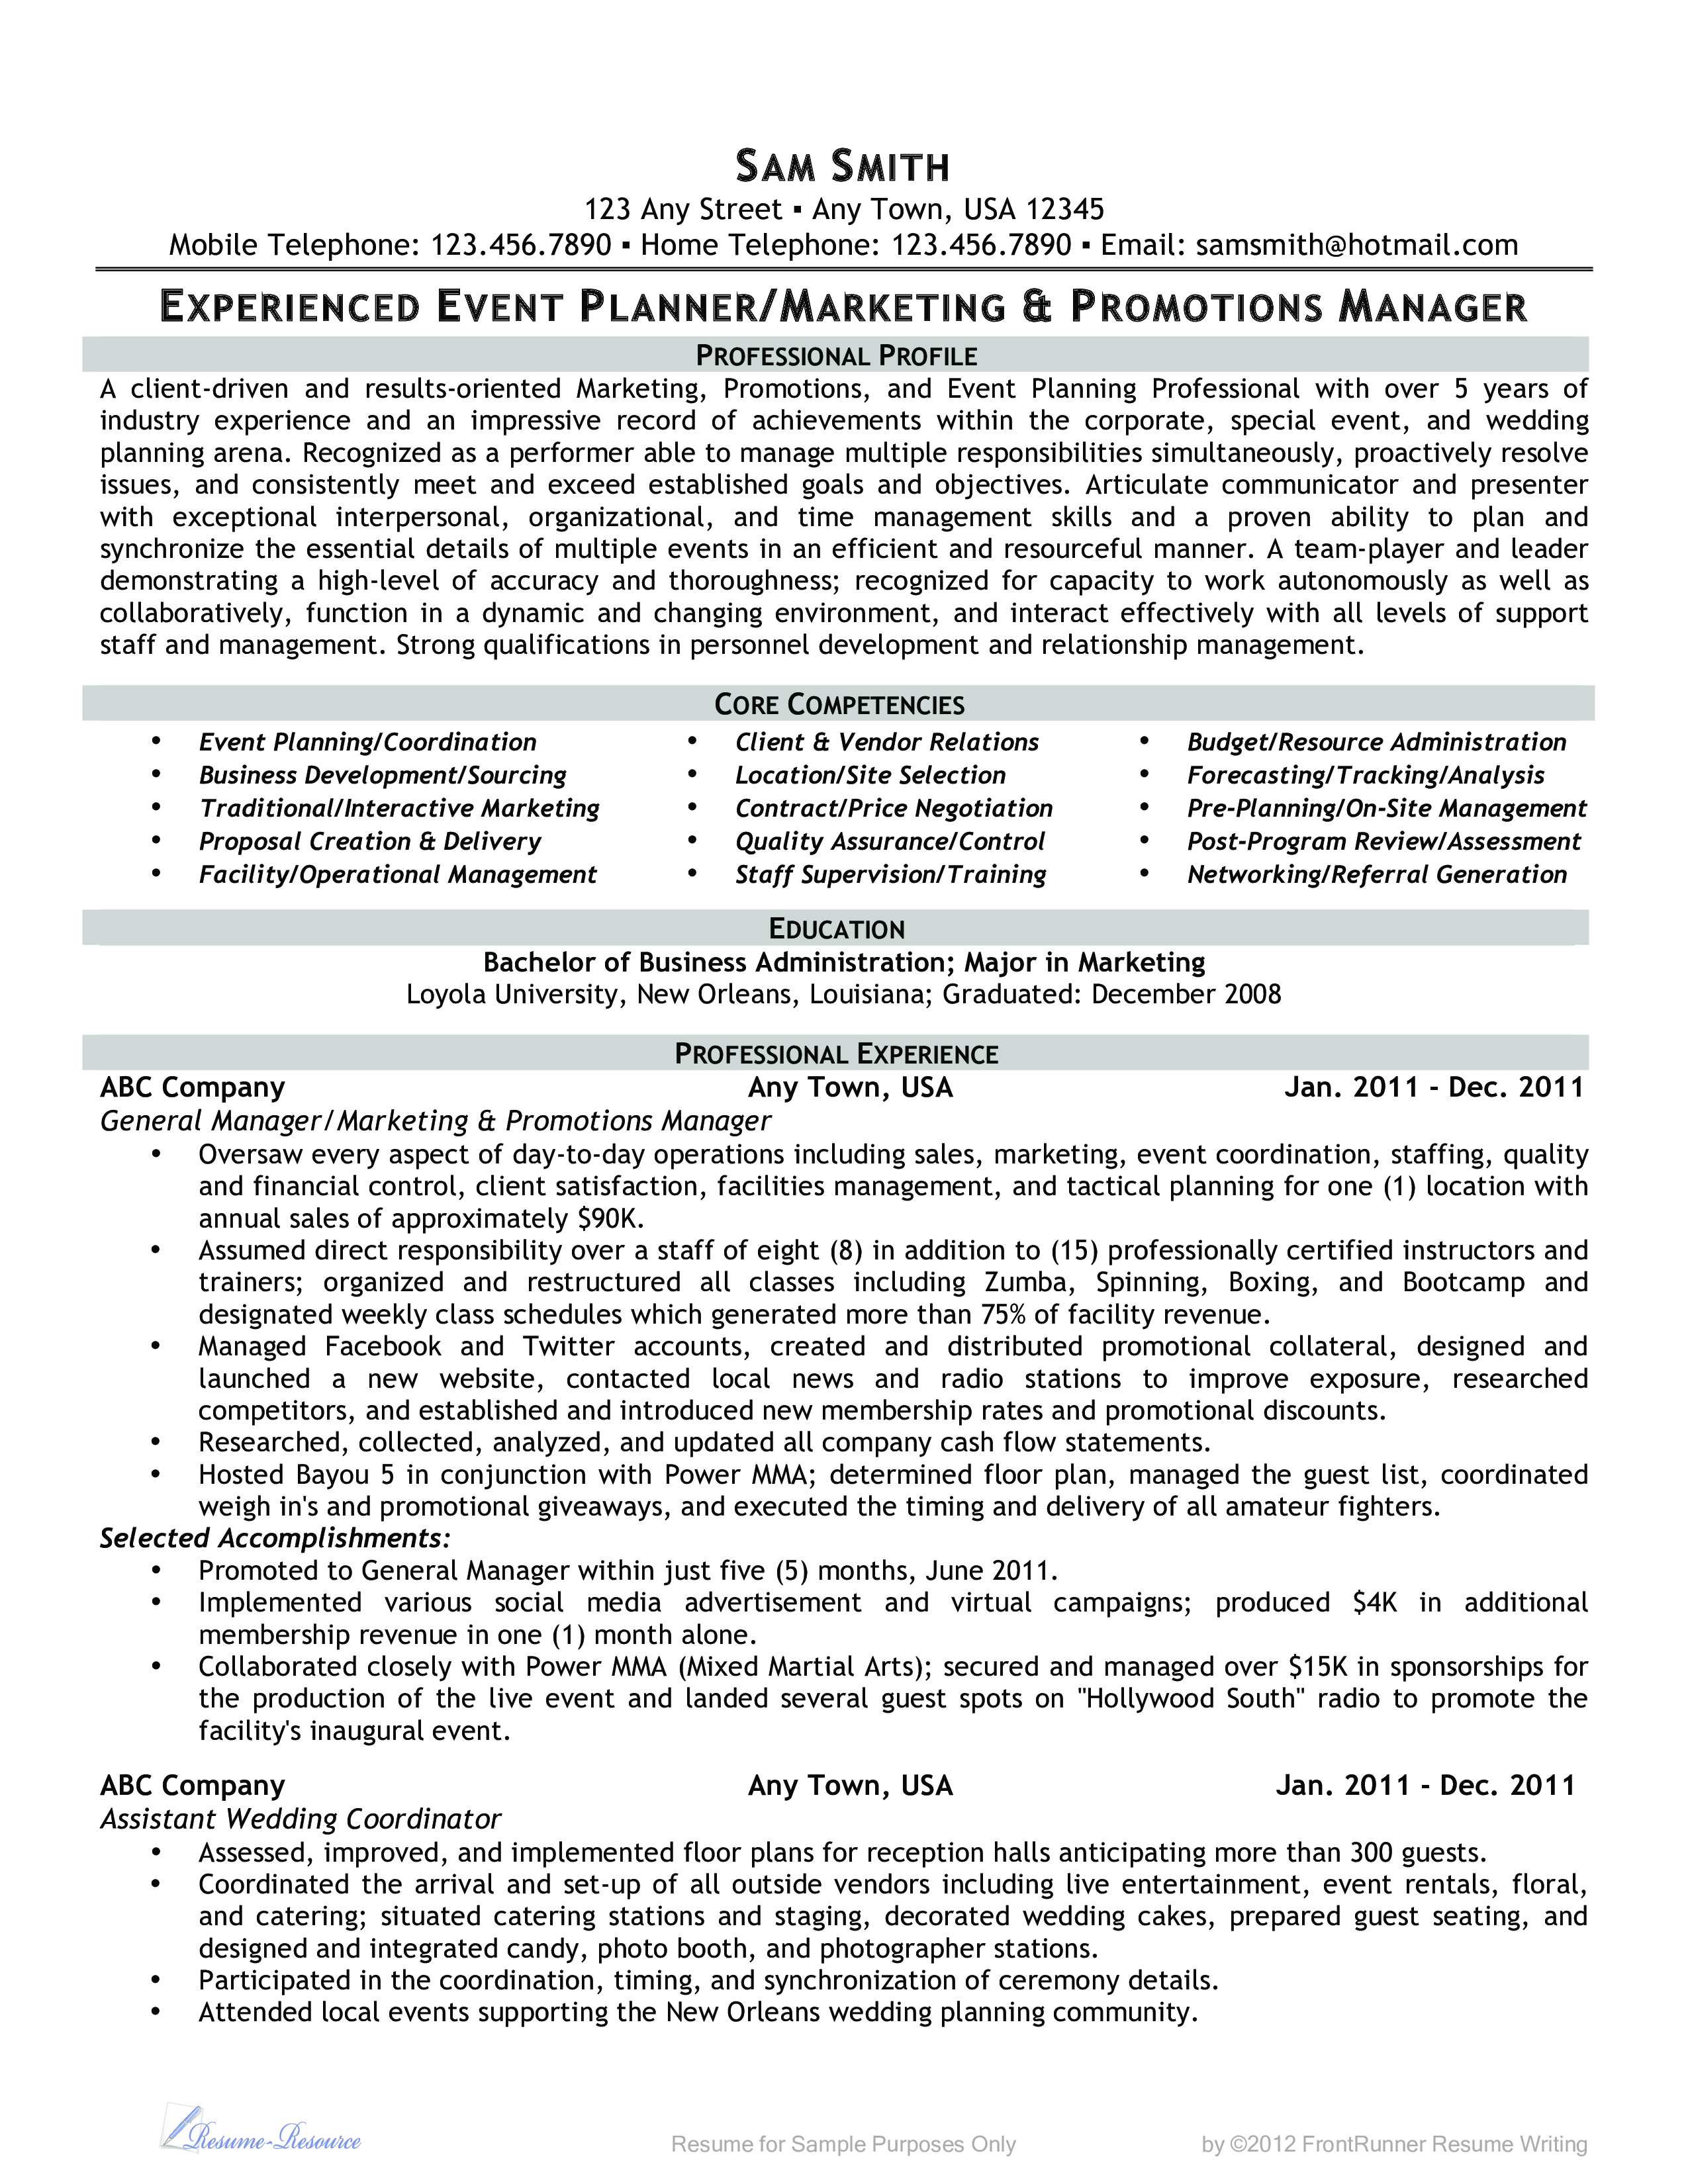 Microsoft Word - Event Planner-Marketing And Promotions Manager.Doc - exbc24.pdf. Easy to download and use .pdf Business template.